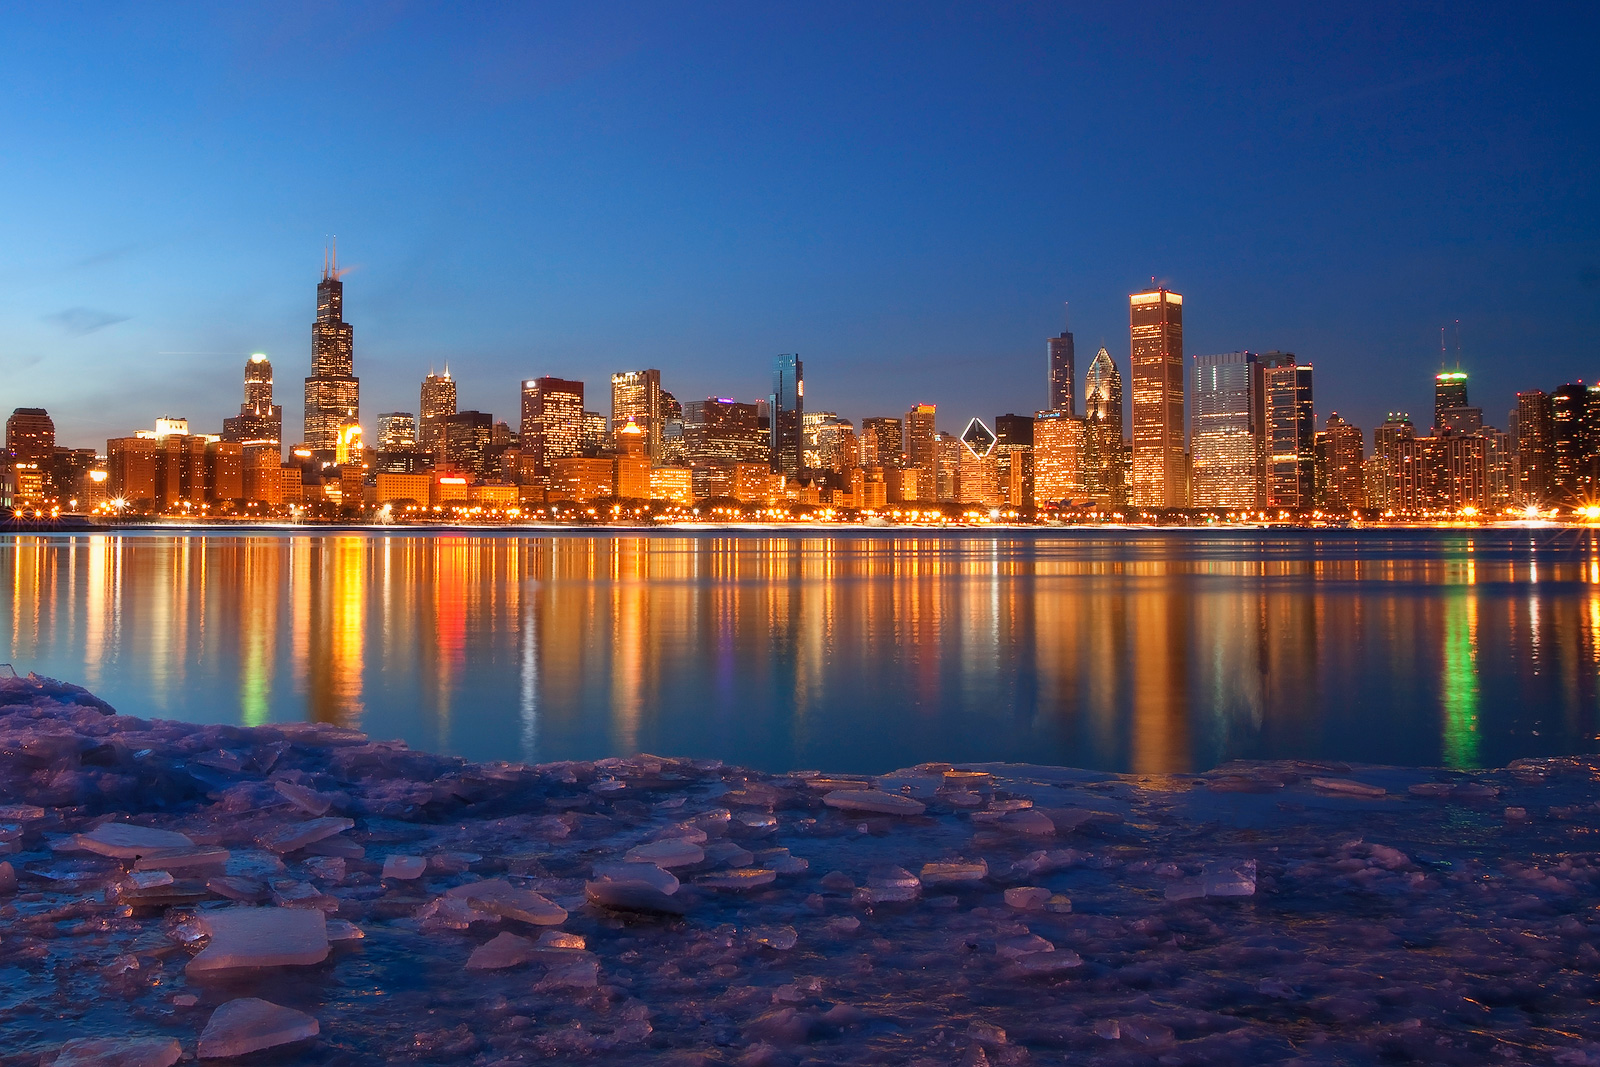 america,building,chicago,city scape,cityscape,horizontal,ice,il,illinois,midwest,north america,planetarium,skyline,united states,us,usa,winter, photo